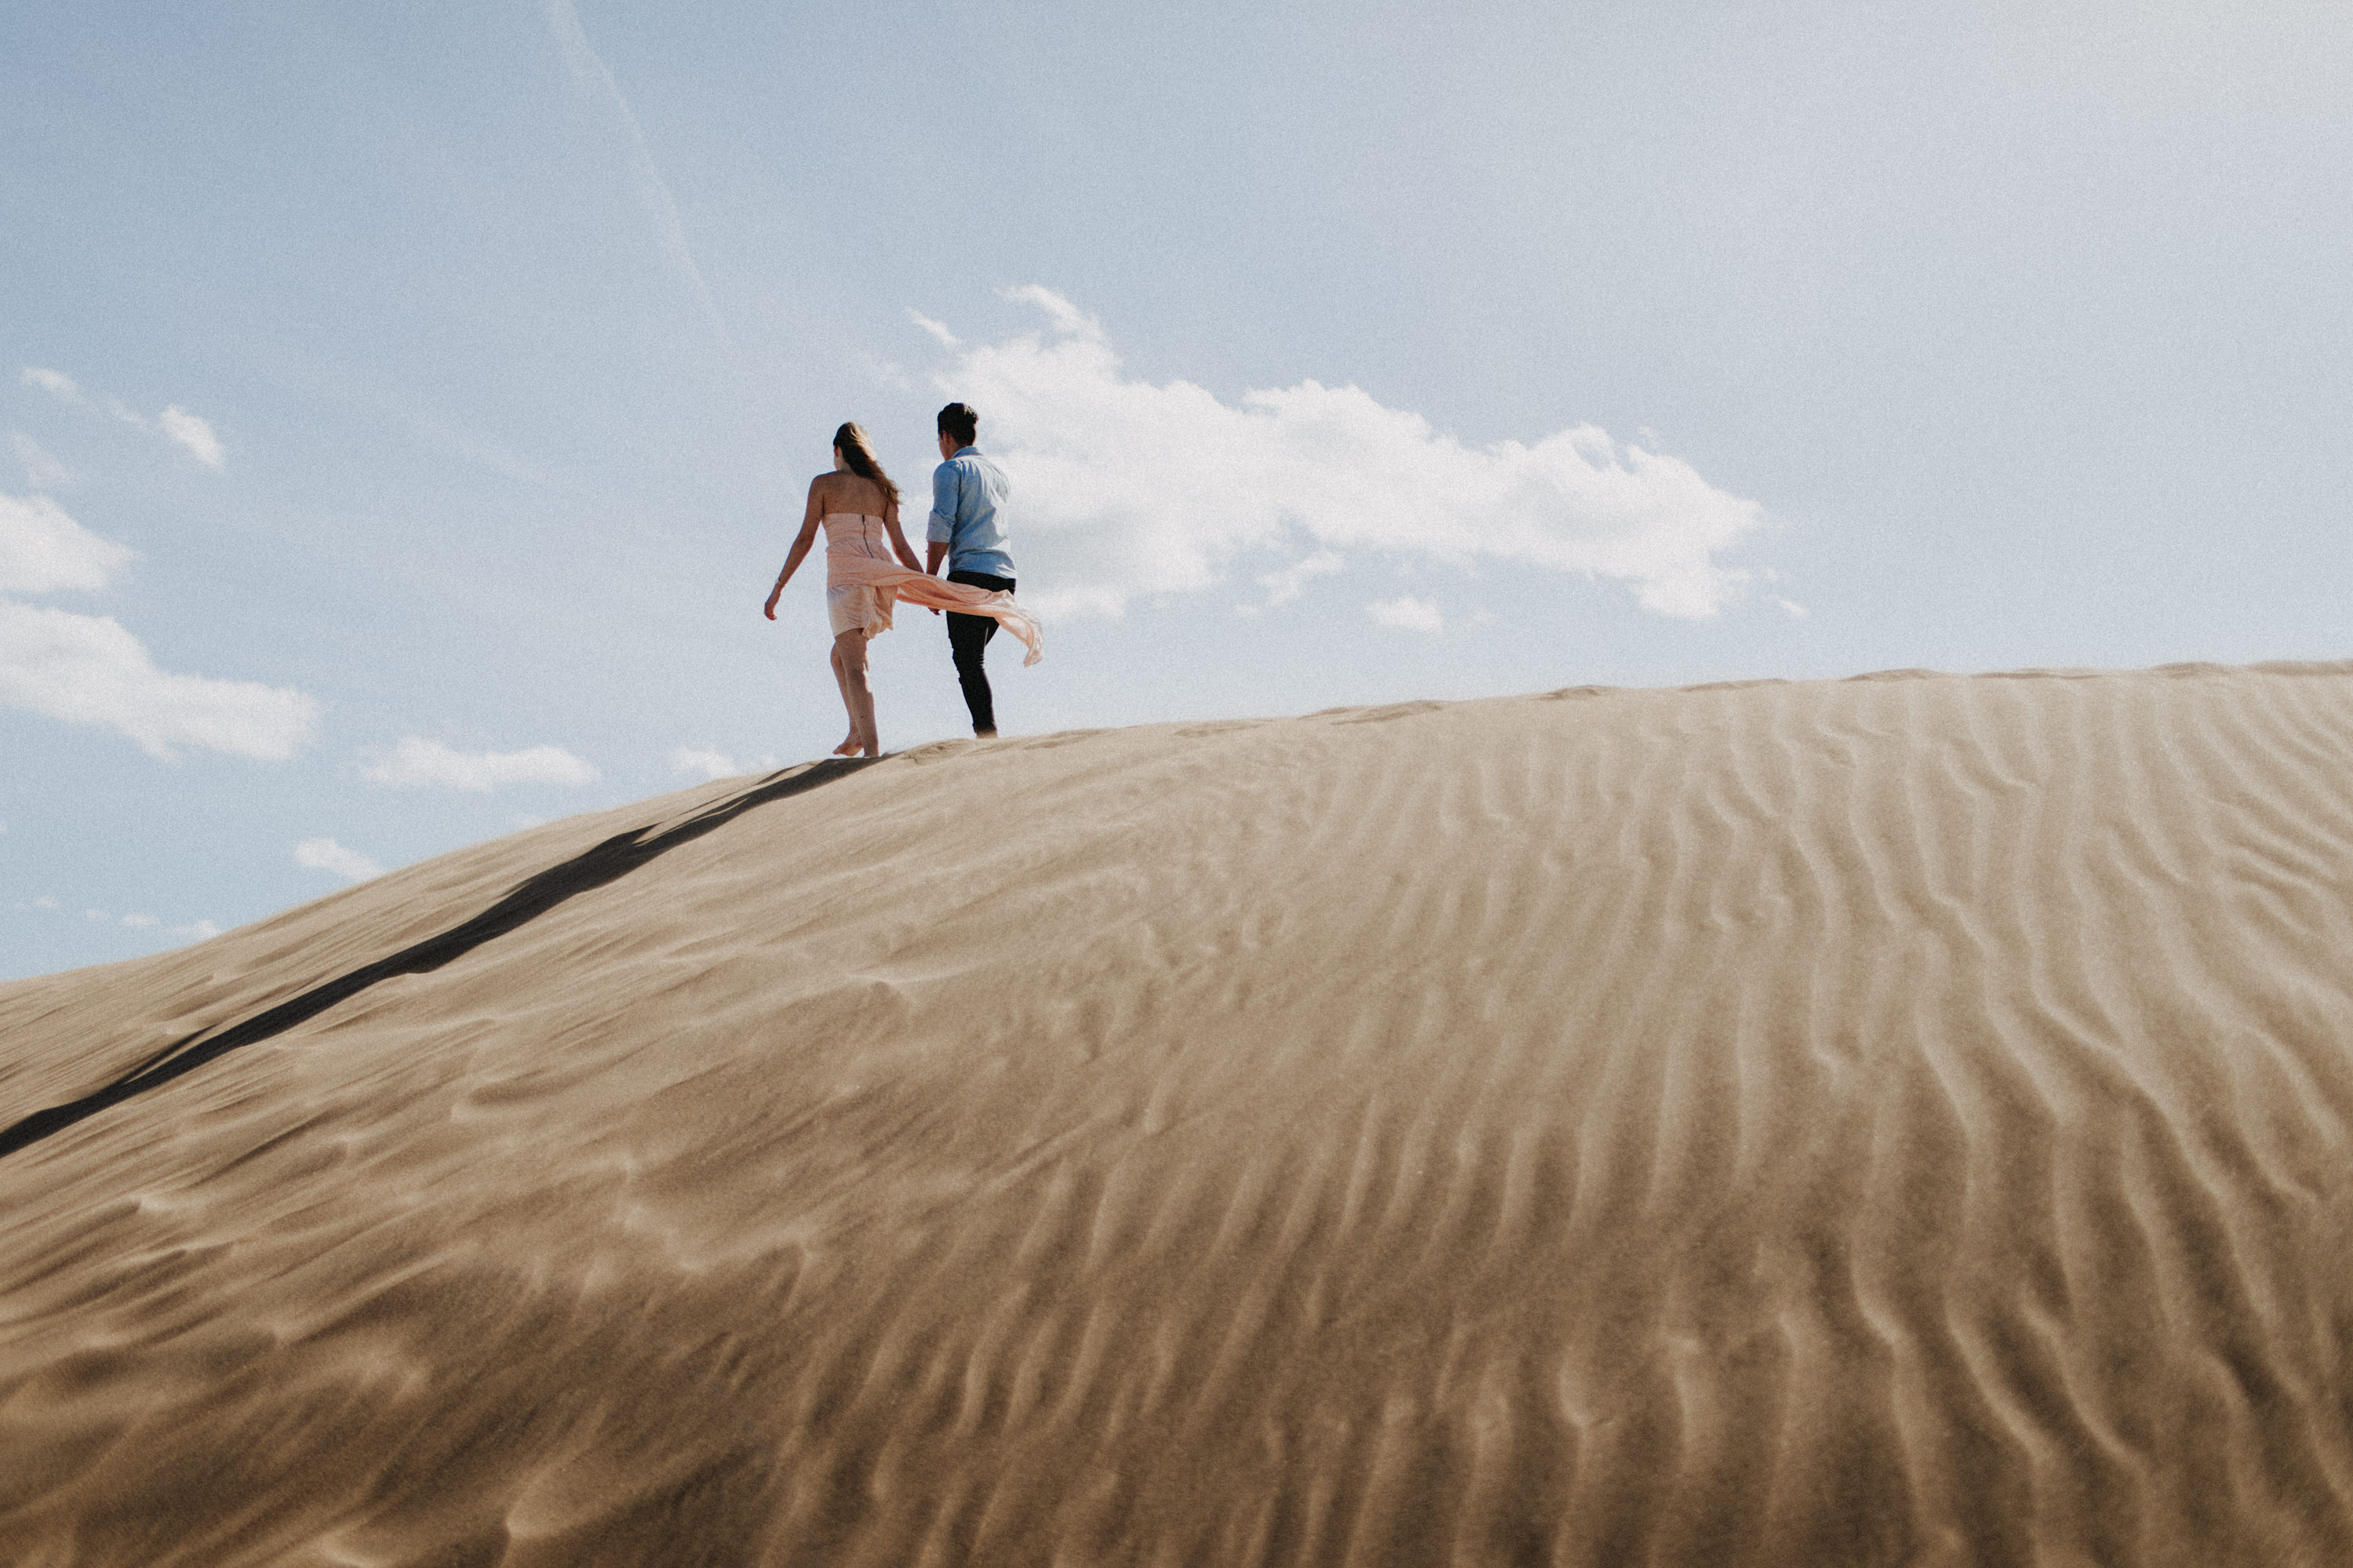 Zu sehen ist das Foto eines Elopement Shoots auf Gran Canaria in den Dünen von Maspalomas, aufgenommen von Tom und Lia, Hochzeitsfotografen aus Rostock. You see a photo that has been taken in the dunes of Maspalomas during an elopement shoot, Gran Canaria, by Tom and Lia, wedding photographers from Germany.